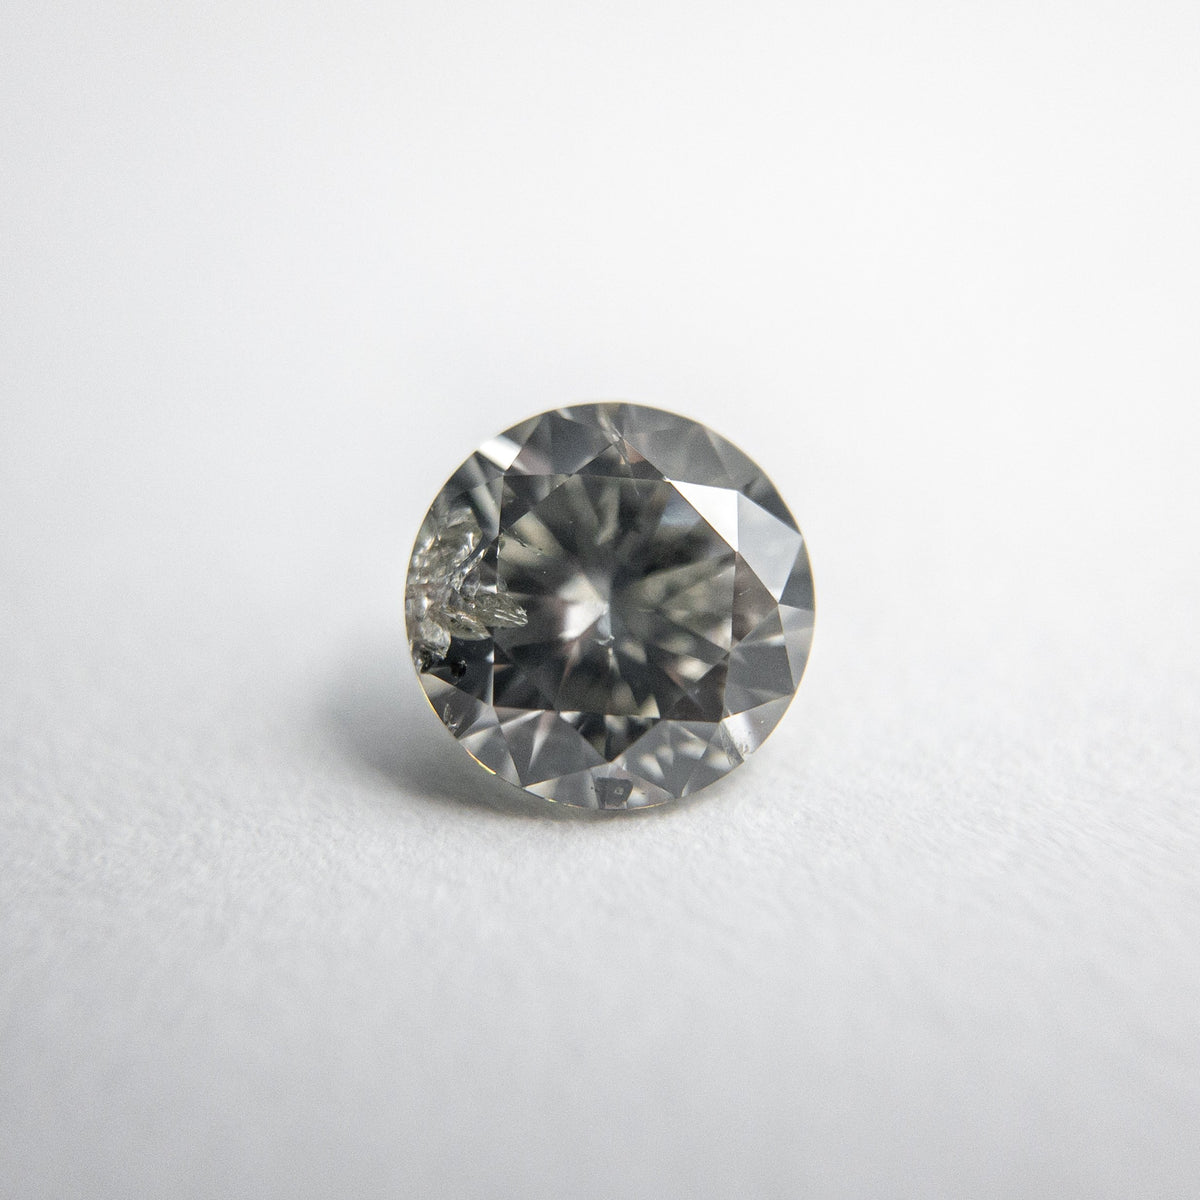 0.57ct 5.27x5.25x3.19mm Fancy Grey Round Brilliant 18273-06